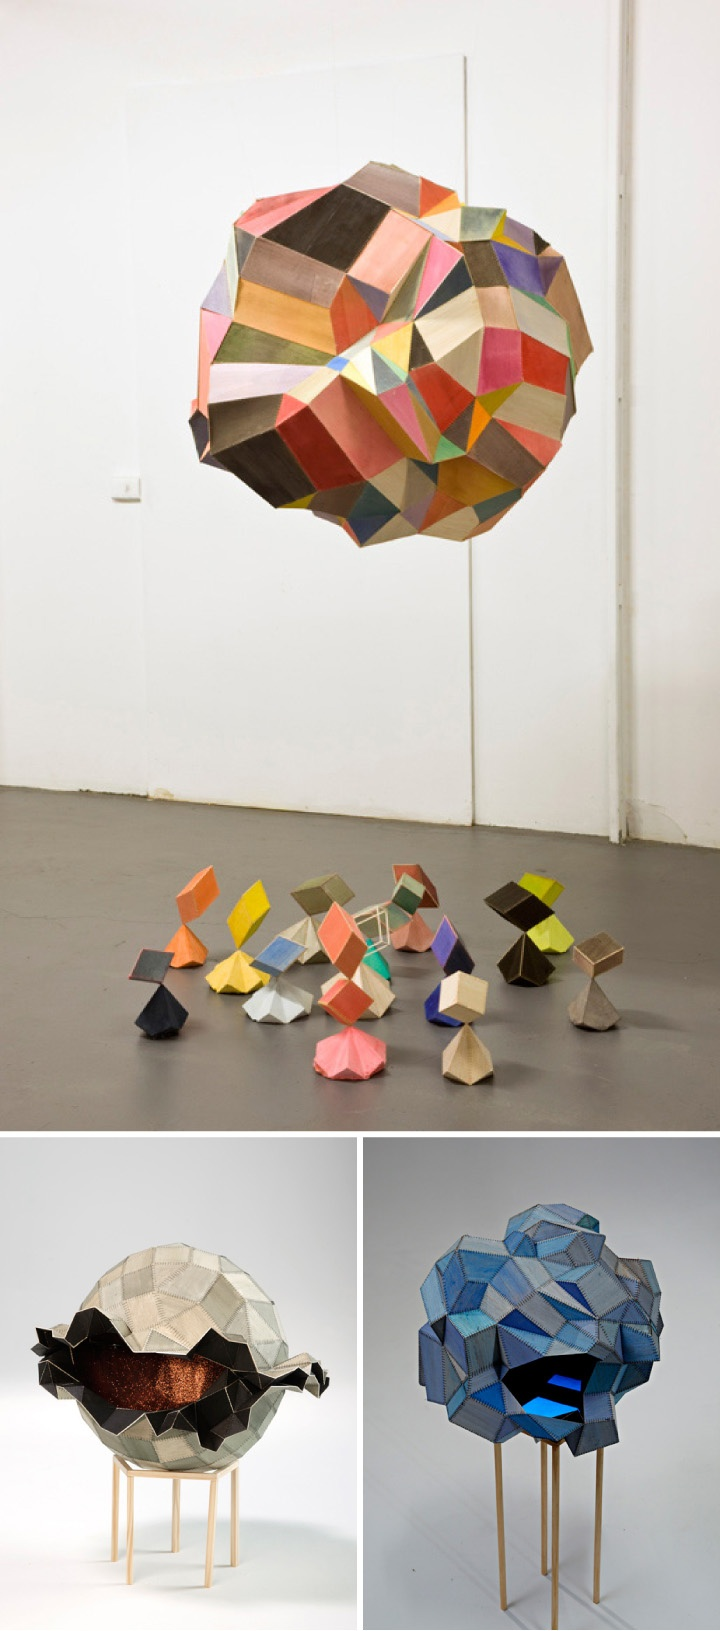 Australian artist Amy Joy Watson hand-stitches her joyful, geometric sculptures out of balsa wood.